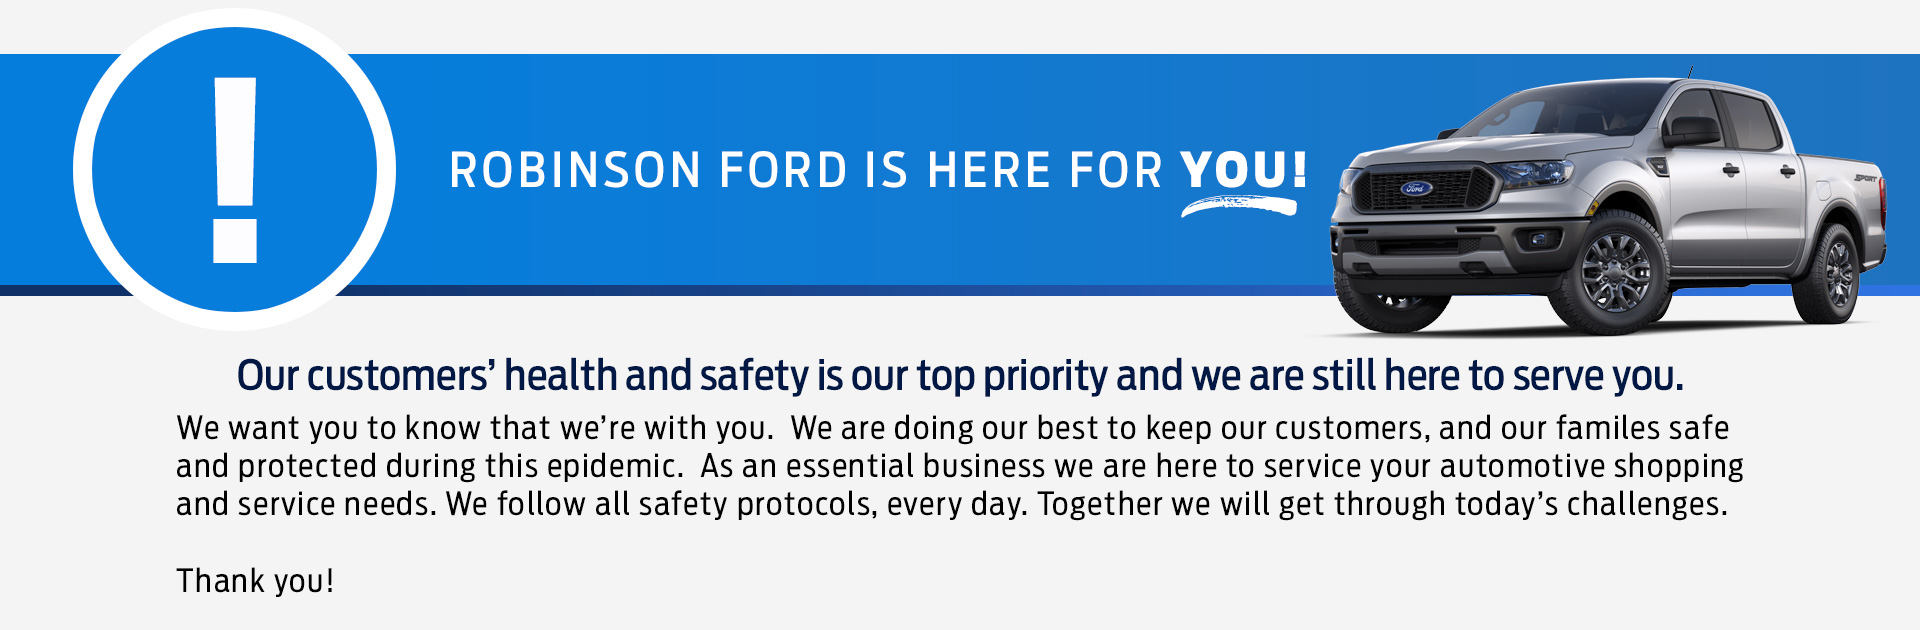 Robinson Ford Covid Hero